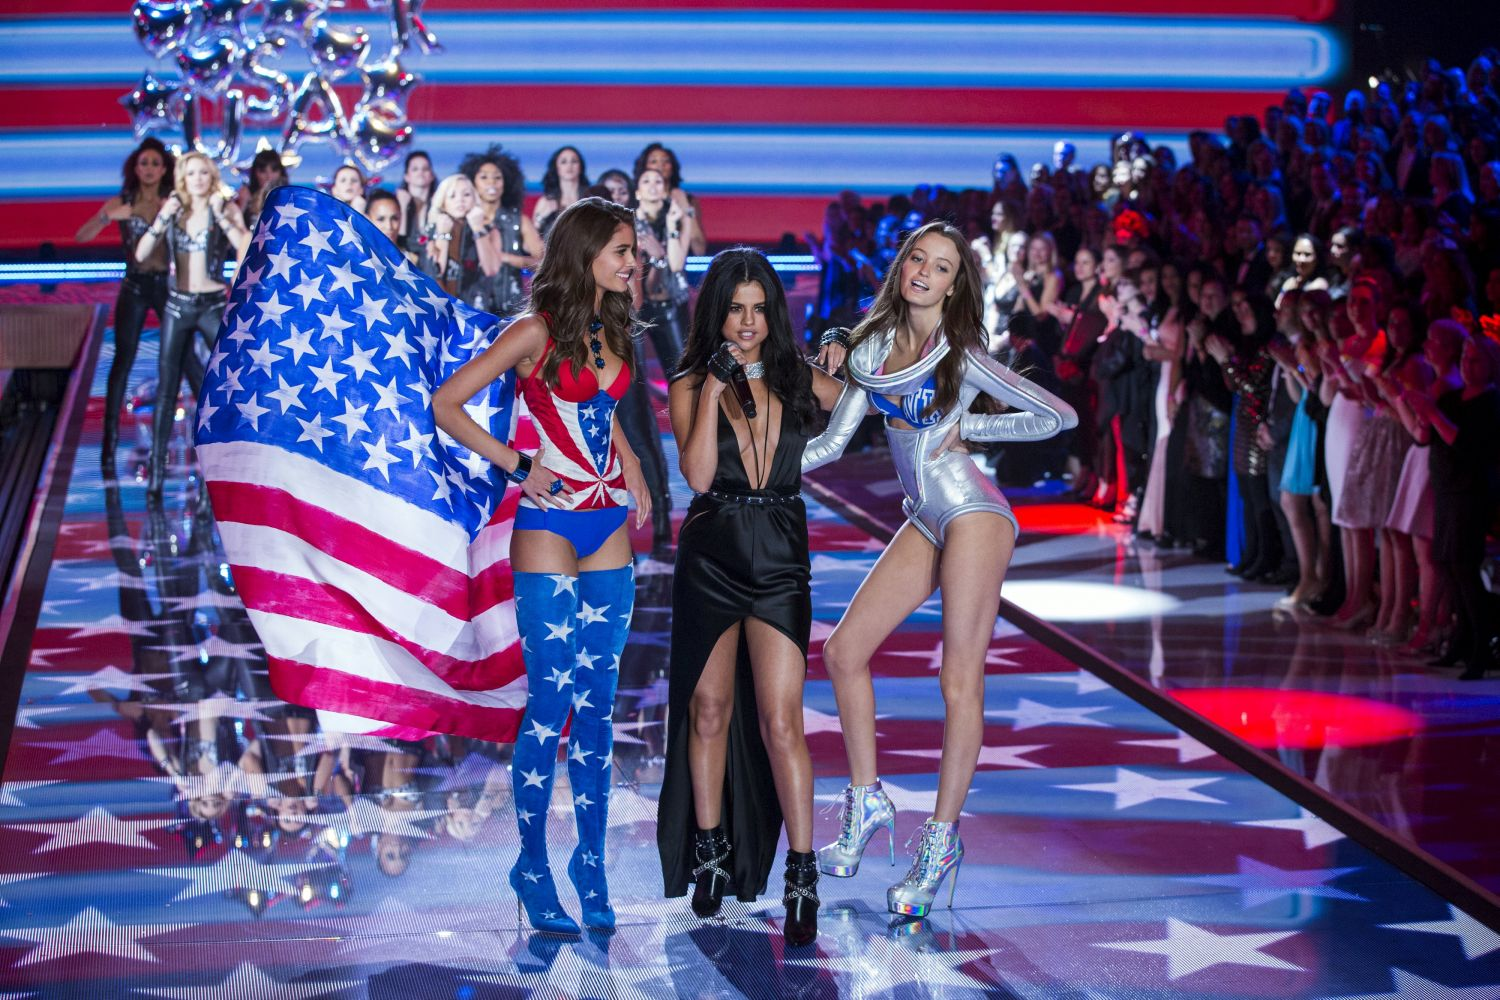 Selena Gomez joins VS models on stage during the Victoria's Secret Fashion Show